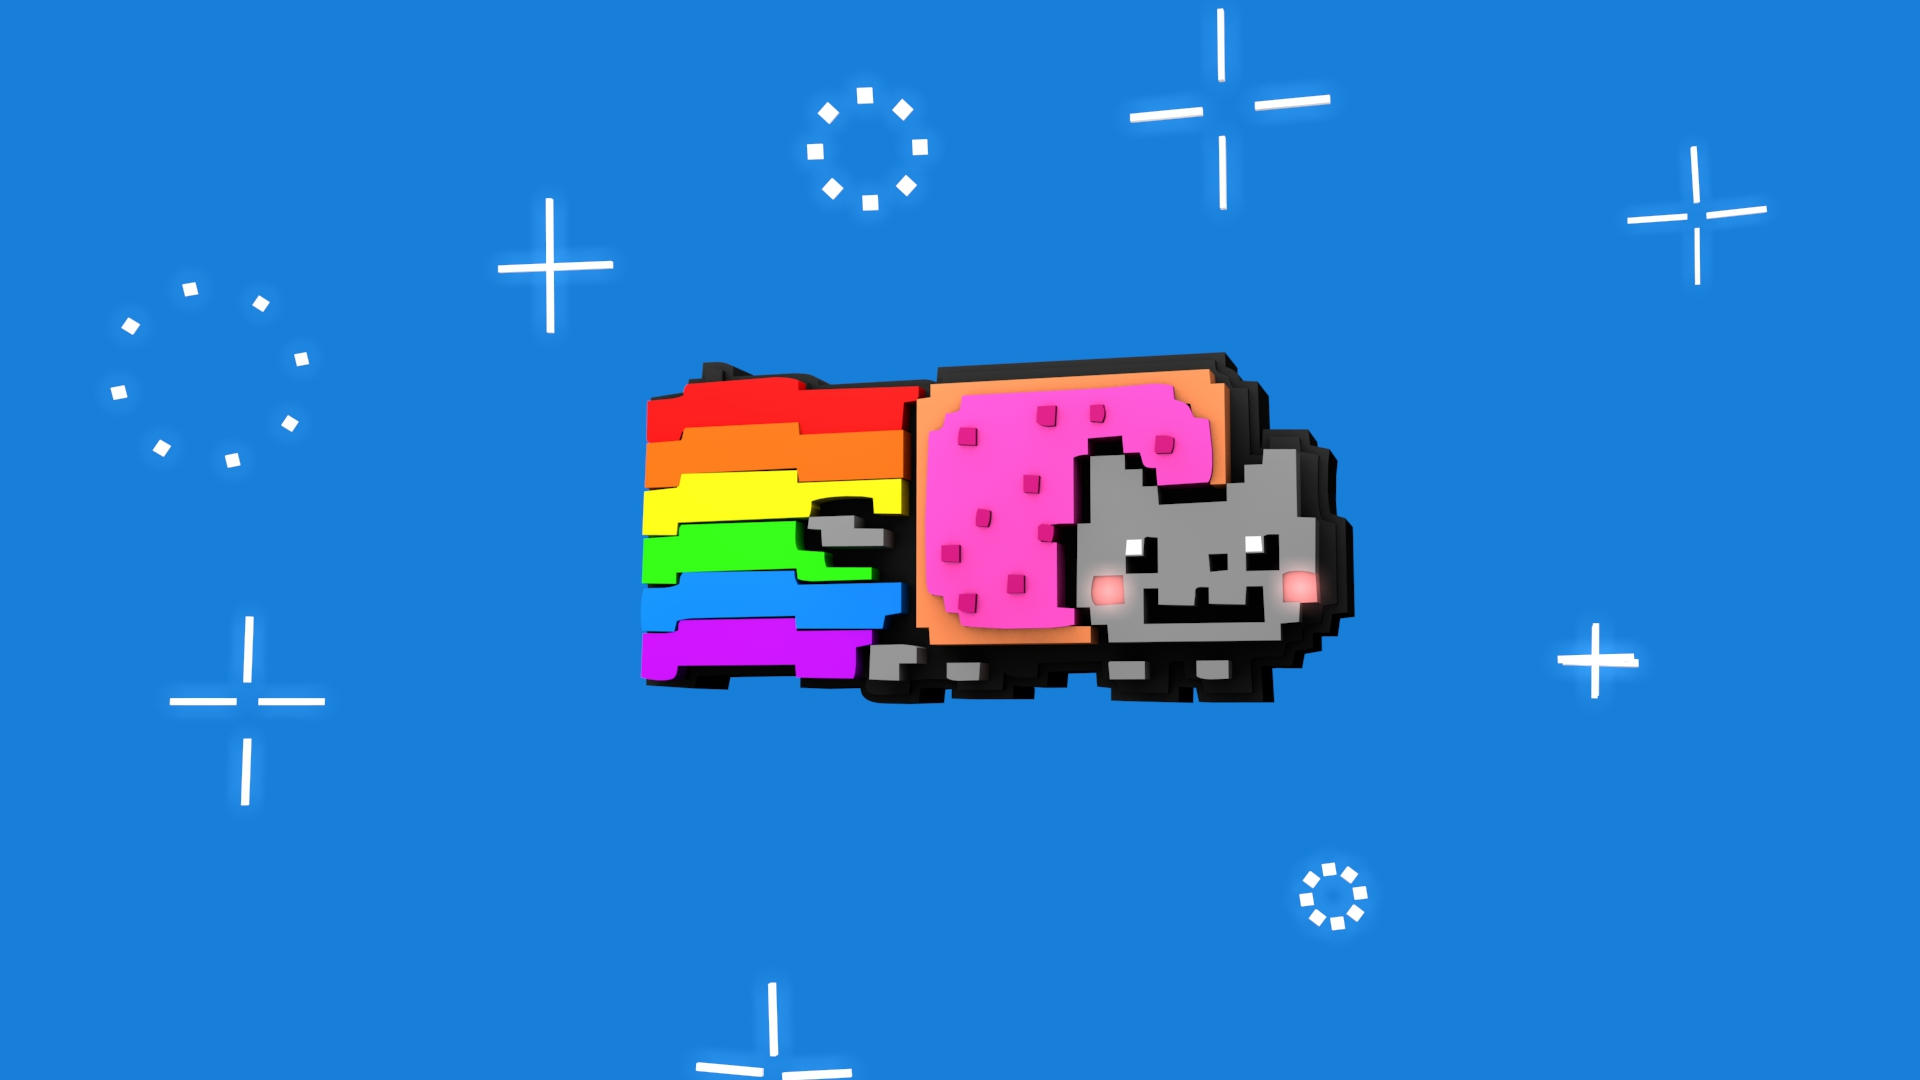 nyan cat live wallpaper for iphone